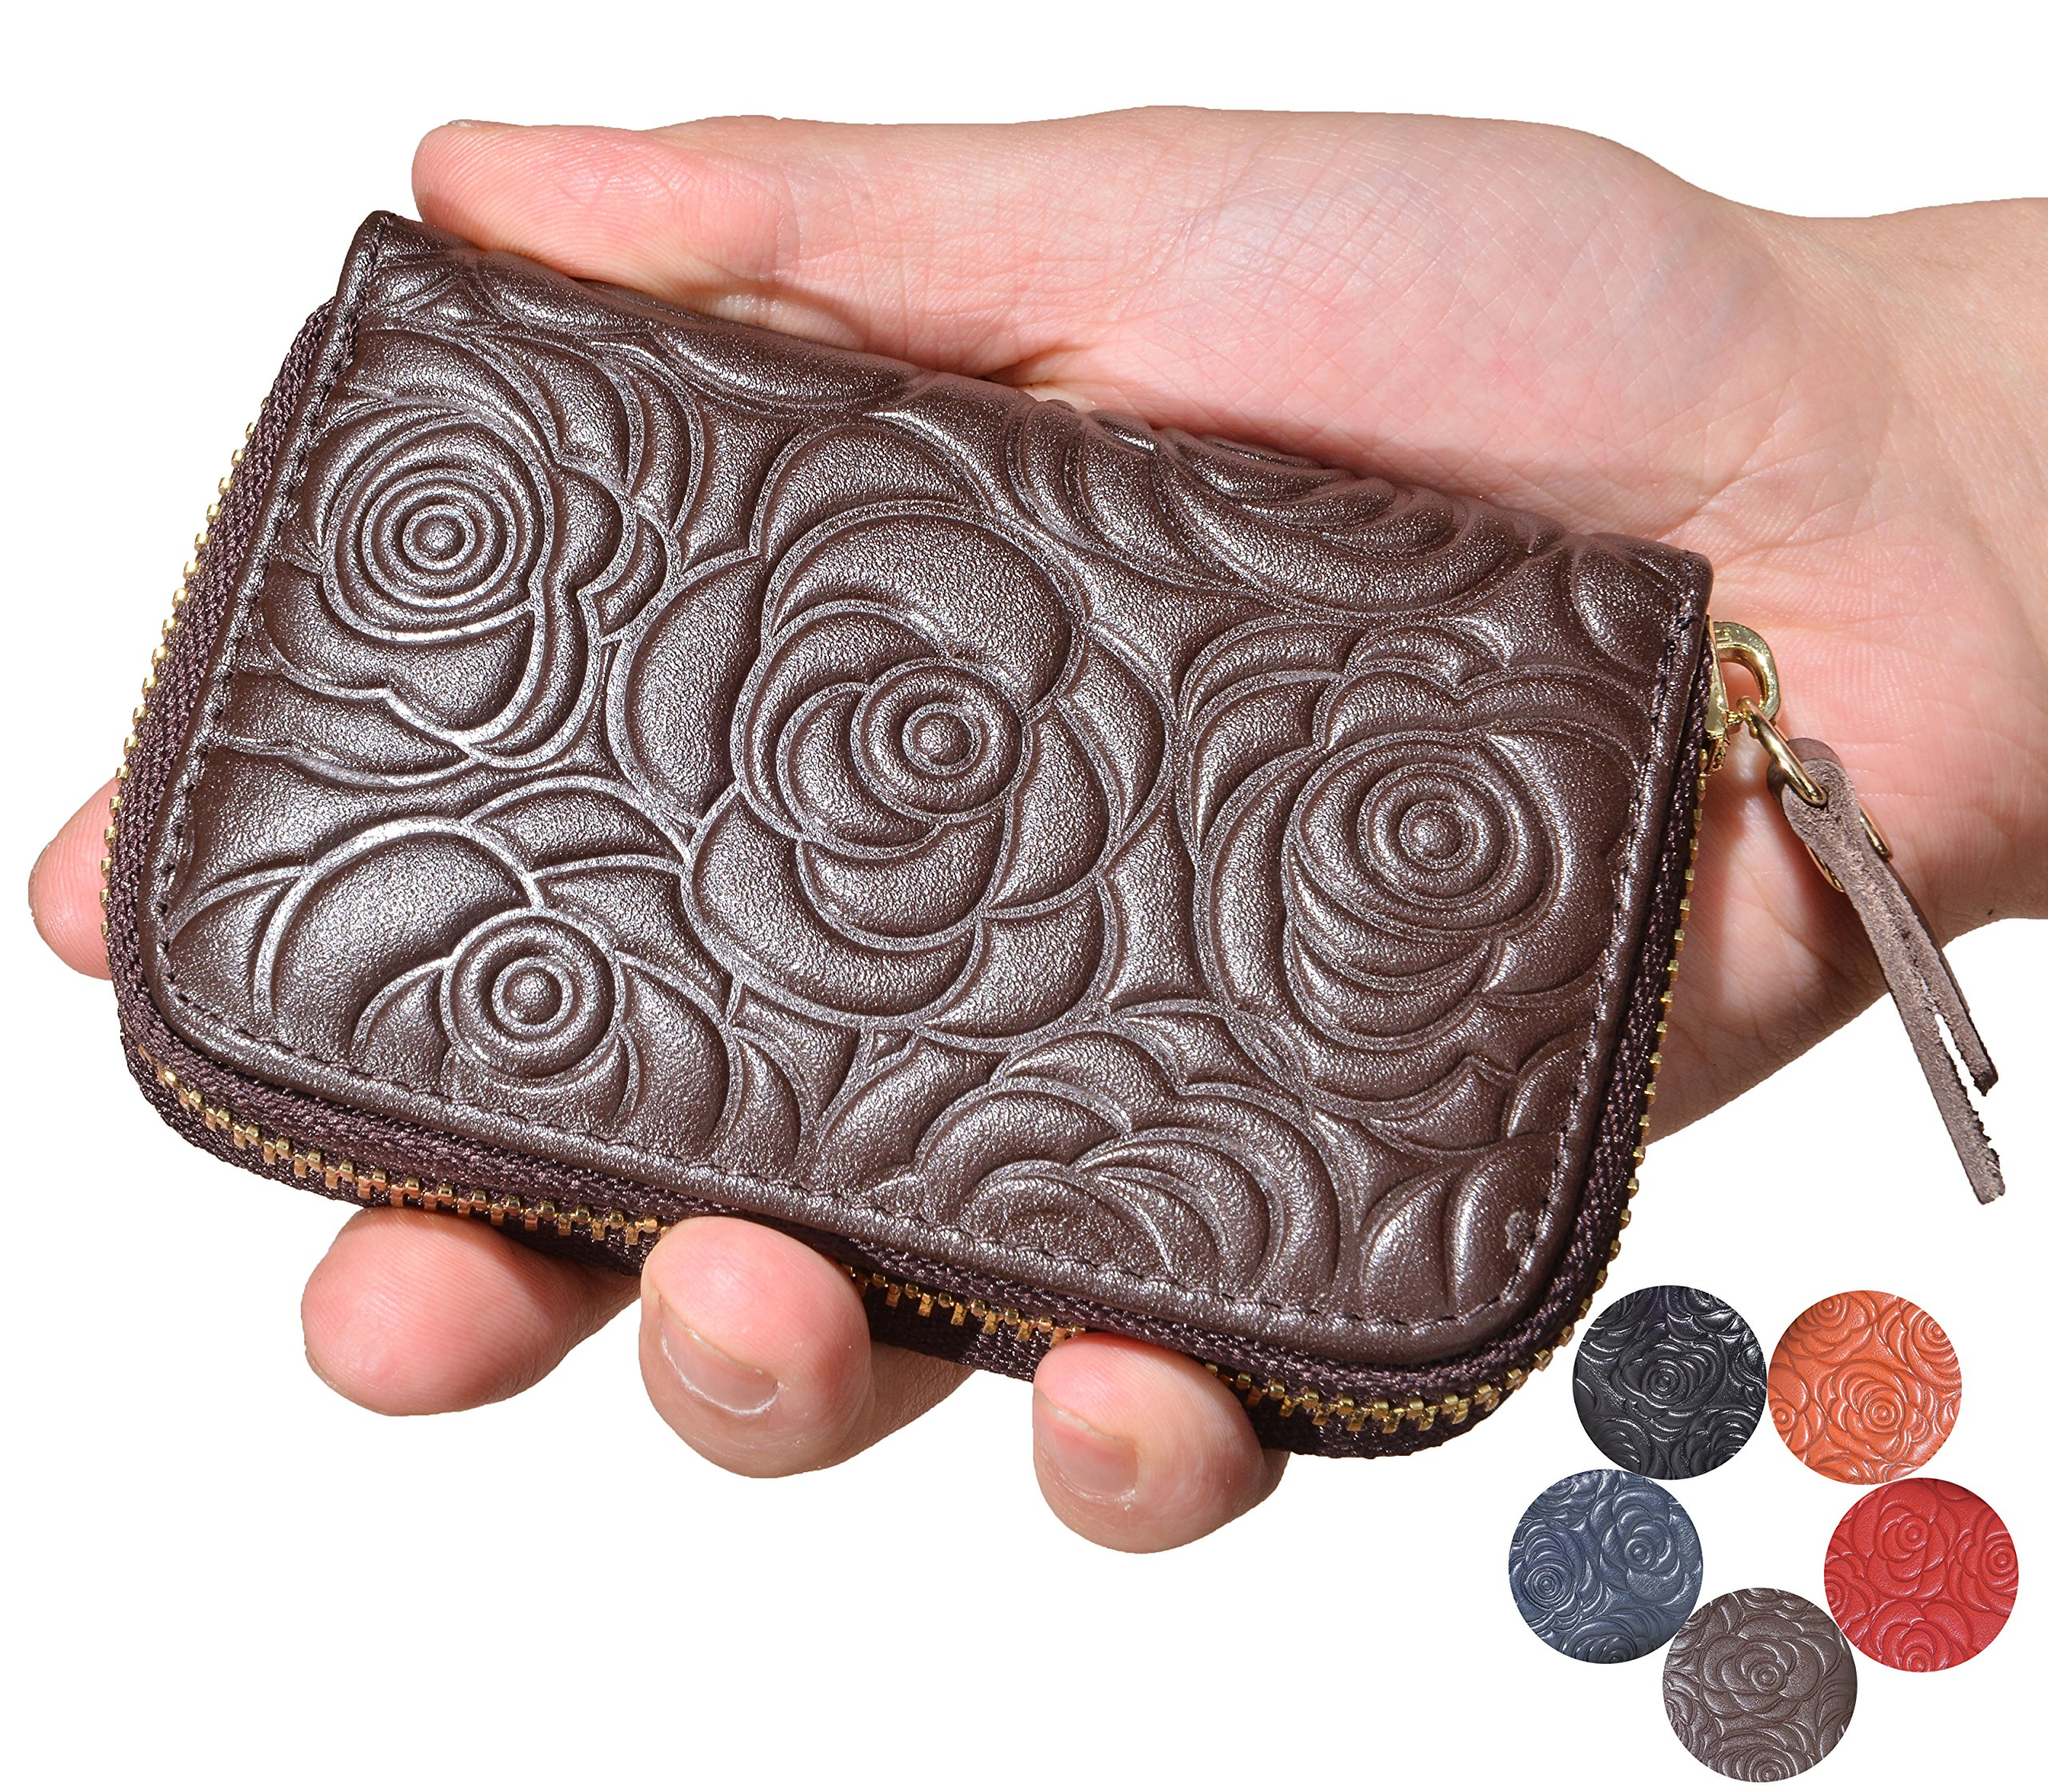 Beurlike Women's Floral Leather Credit Card Holder RFID Security Small Wallet (Coffee) by Beurlike (Image #1)